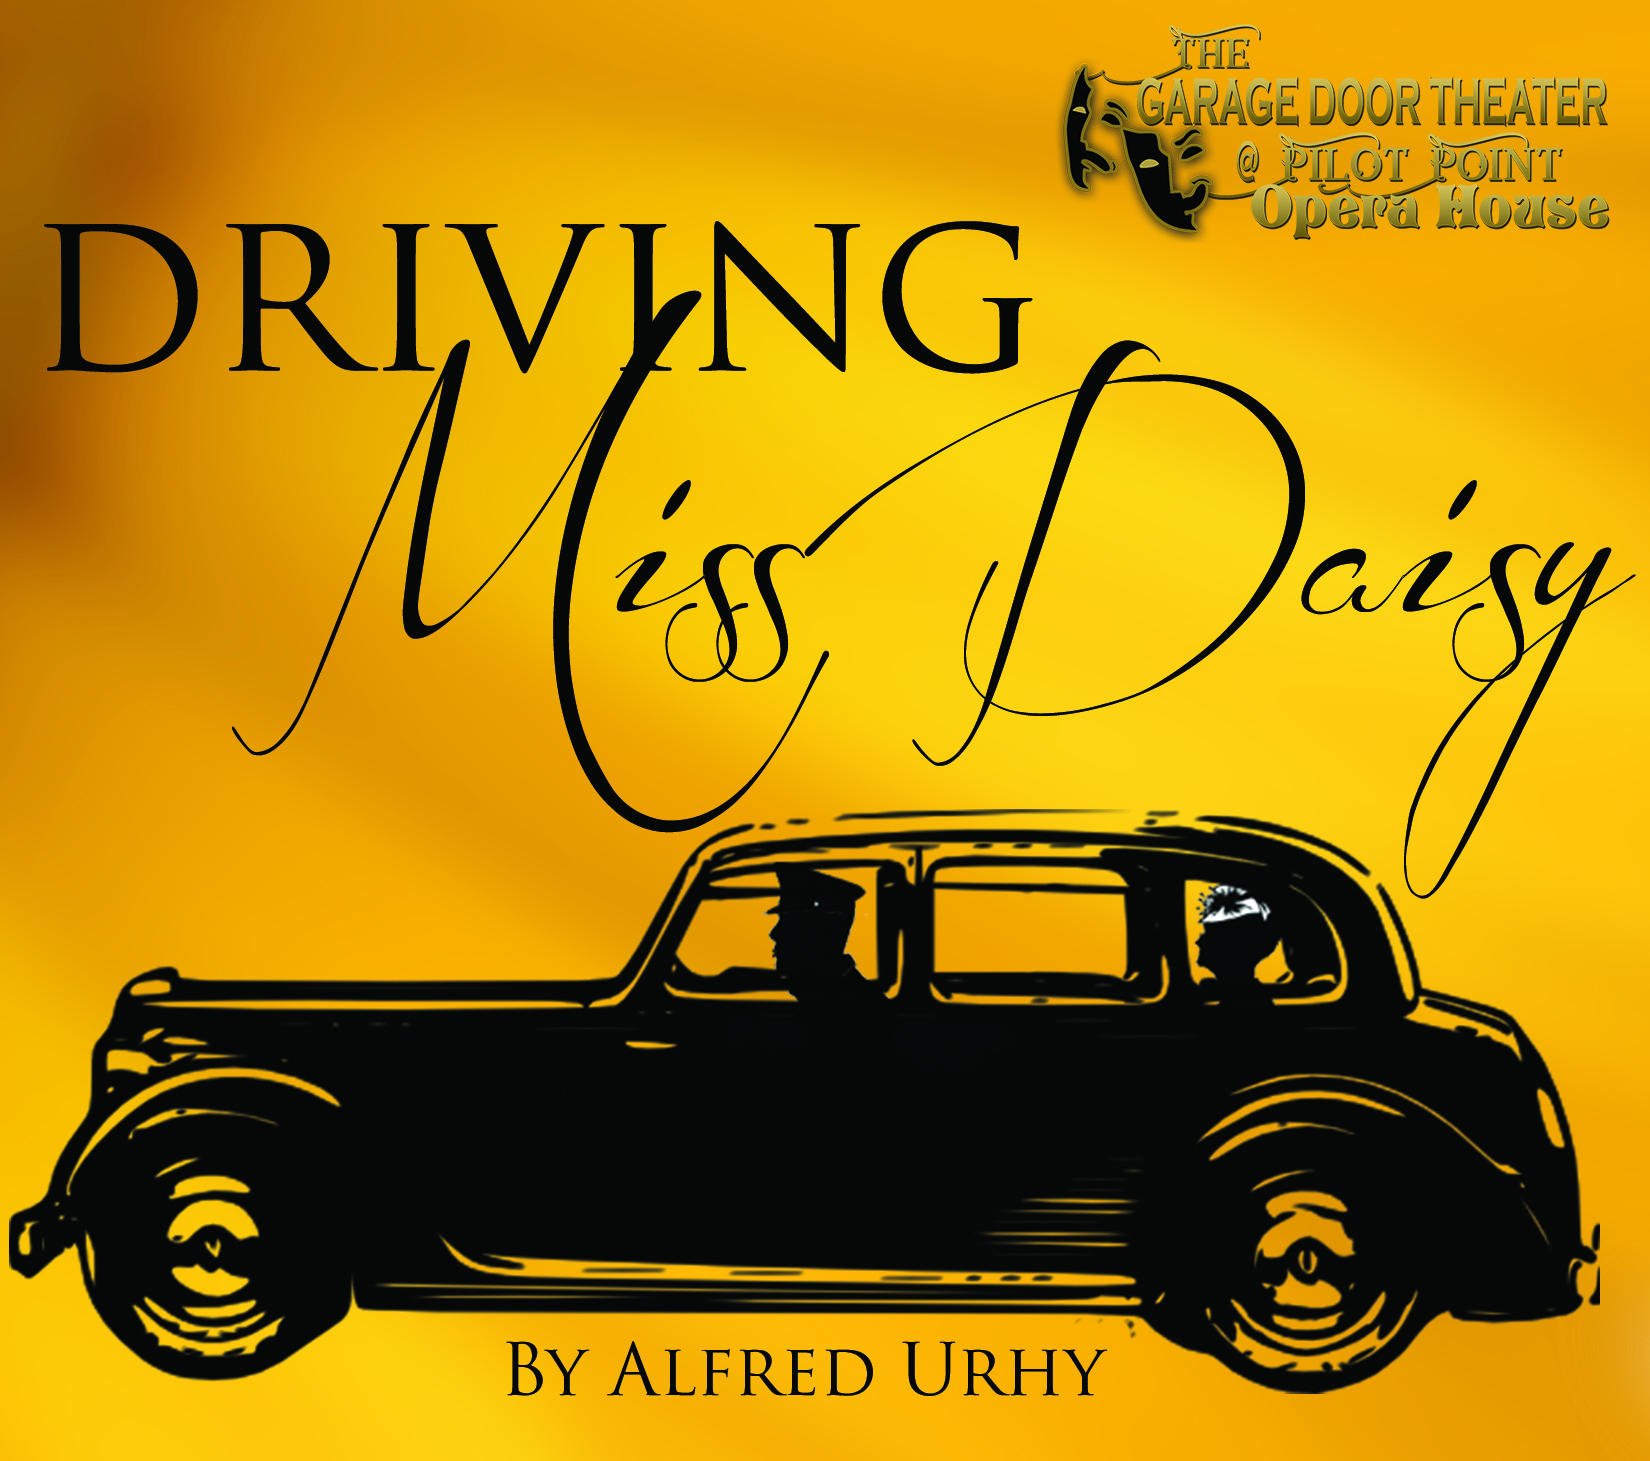 DRIVING MISS DAISY ARTWORK.jpg